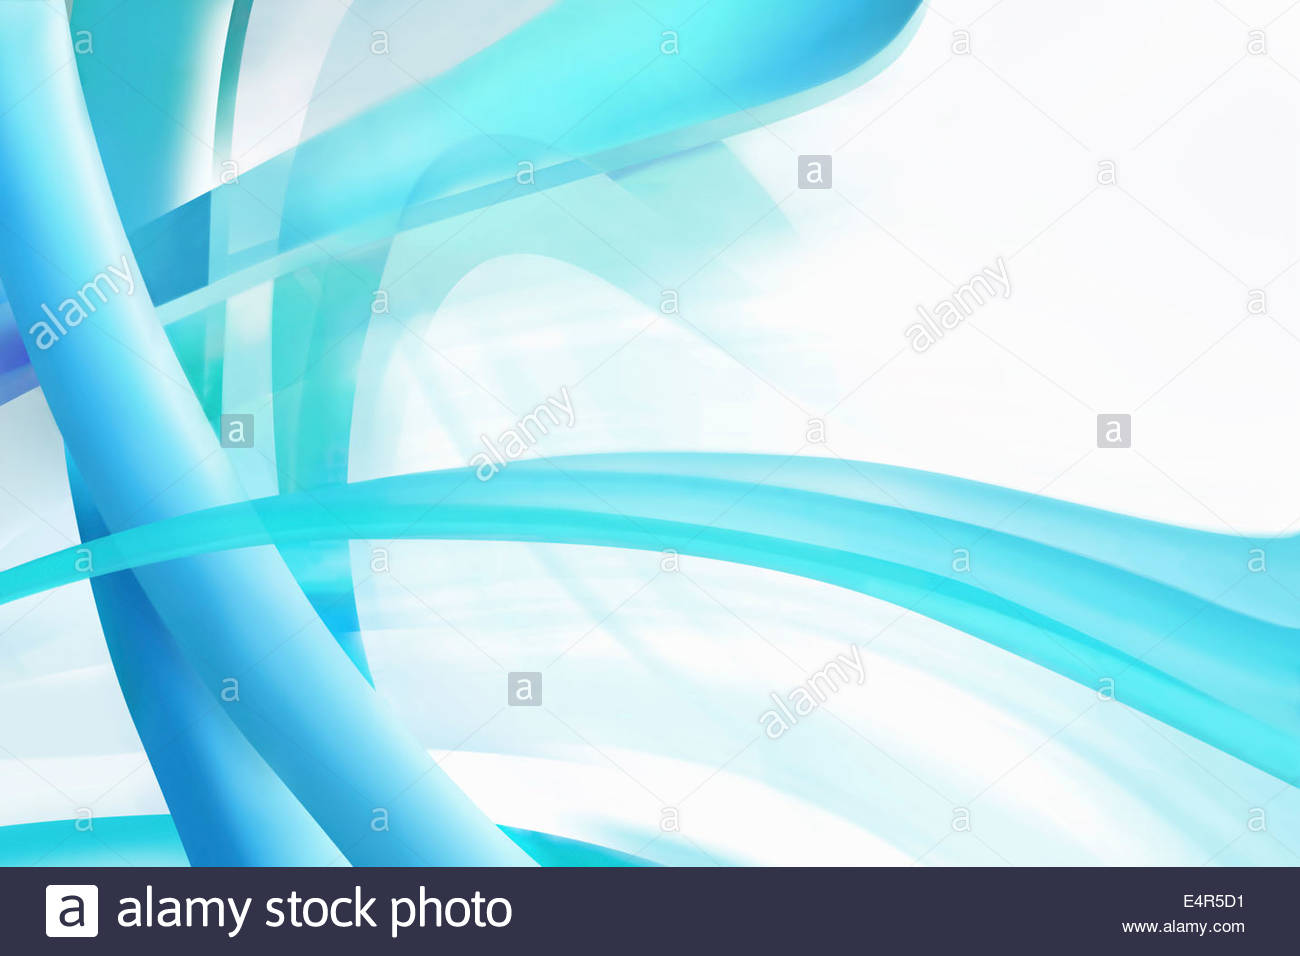 Abstract backgrounds pattern of translucent turquoise lines - Stock Image